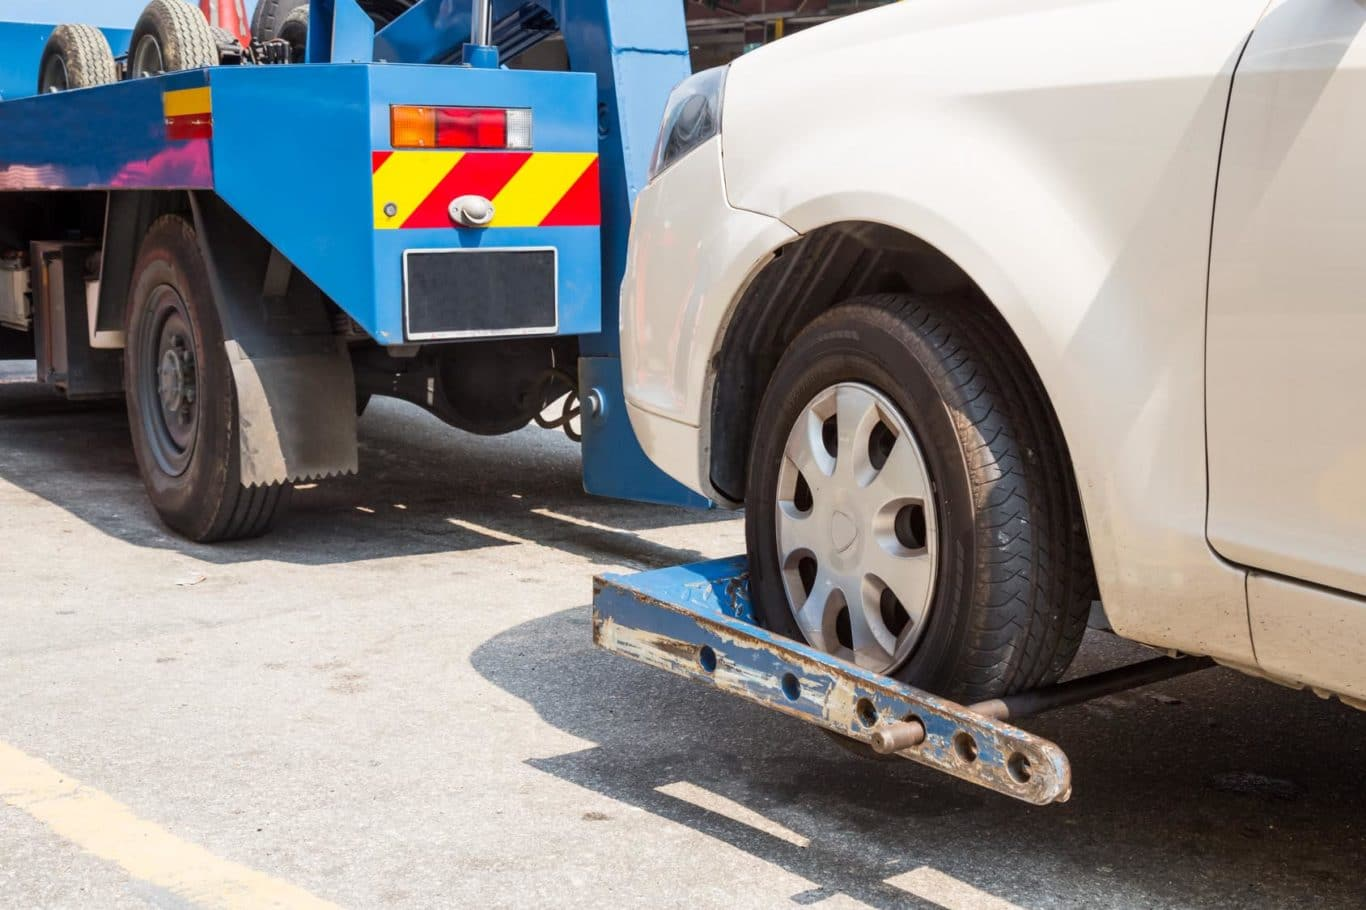 Mosney expert Towing services